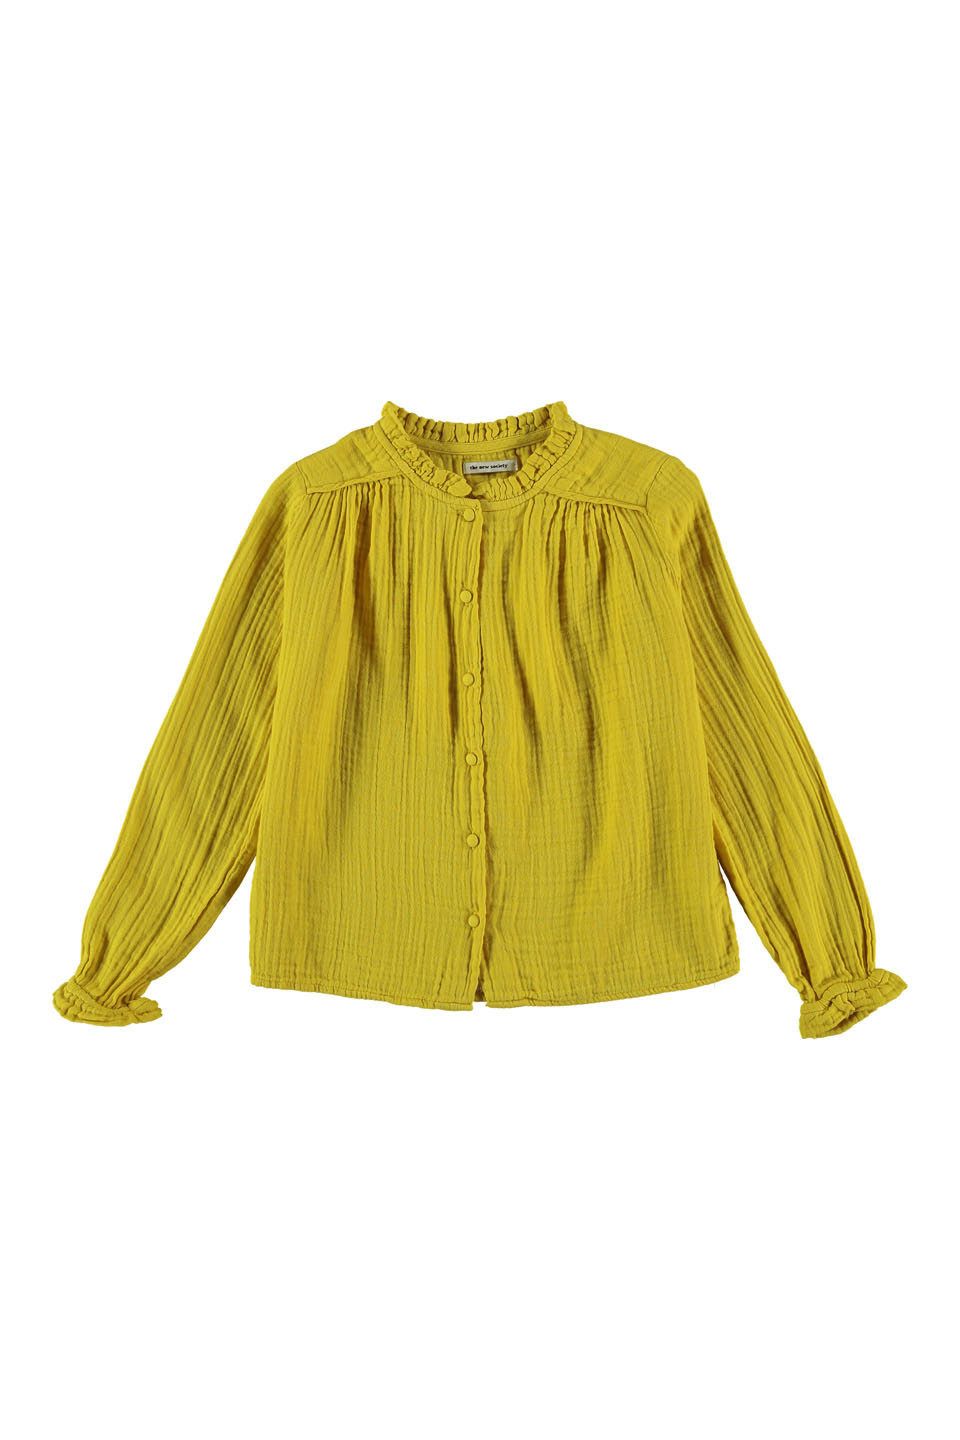 Lúa Winter Bambula Blouse, yellow, 4Y/8Y/10Y